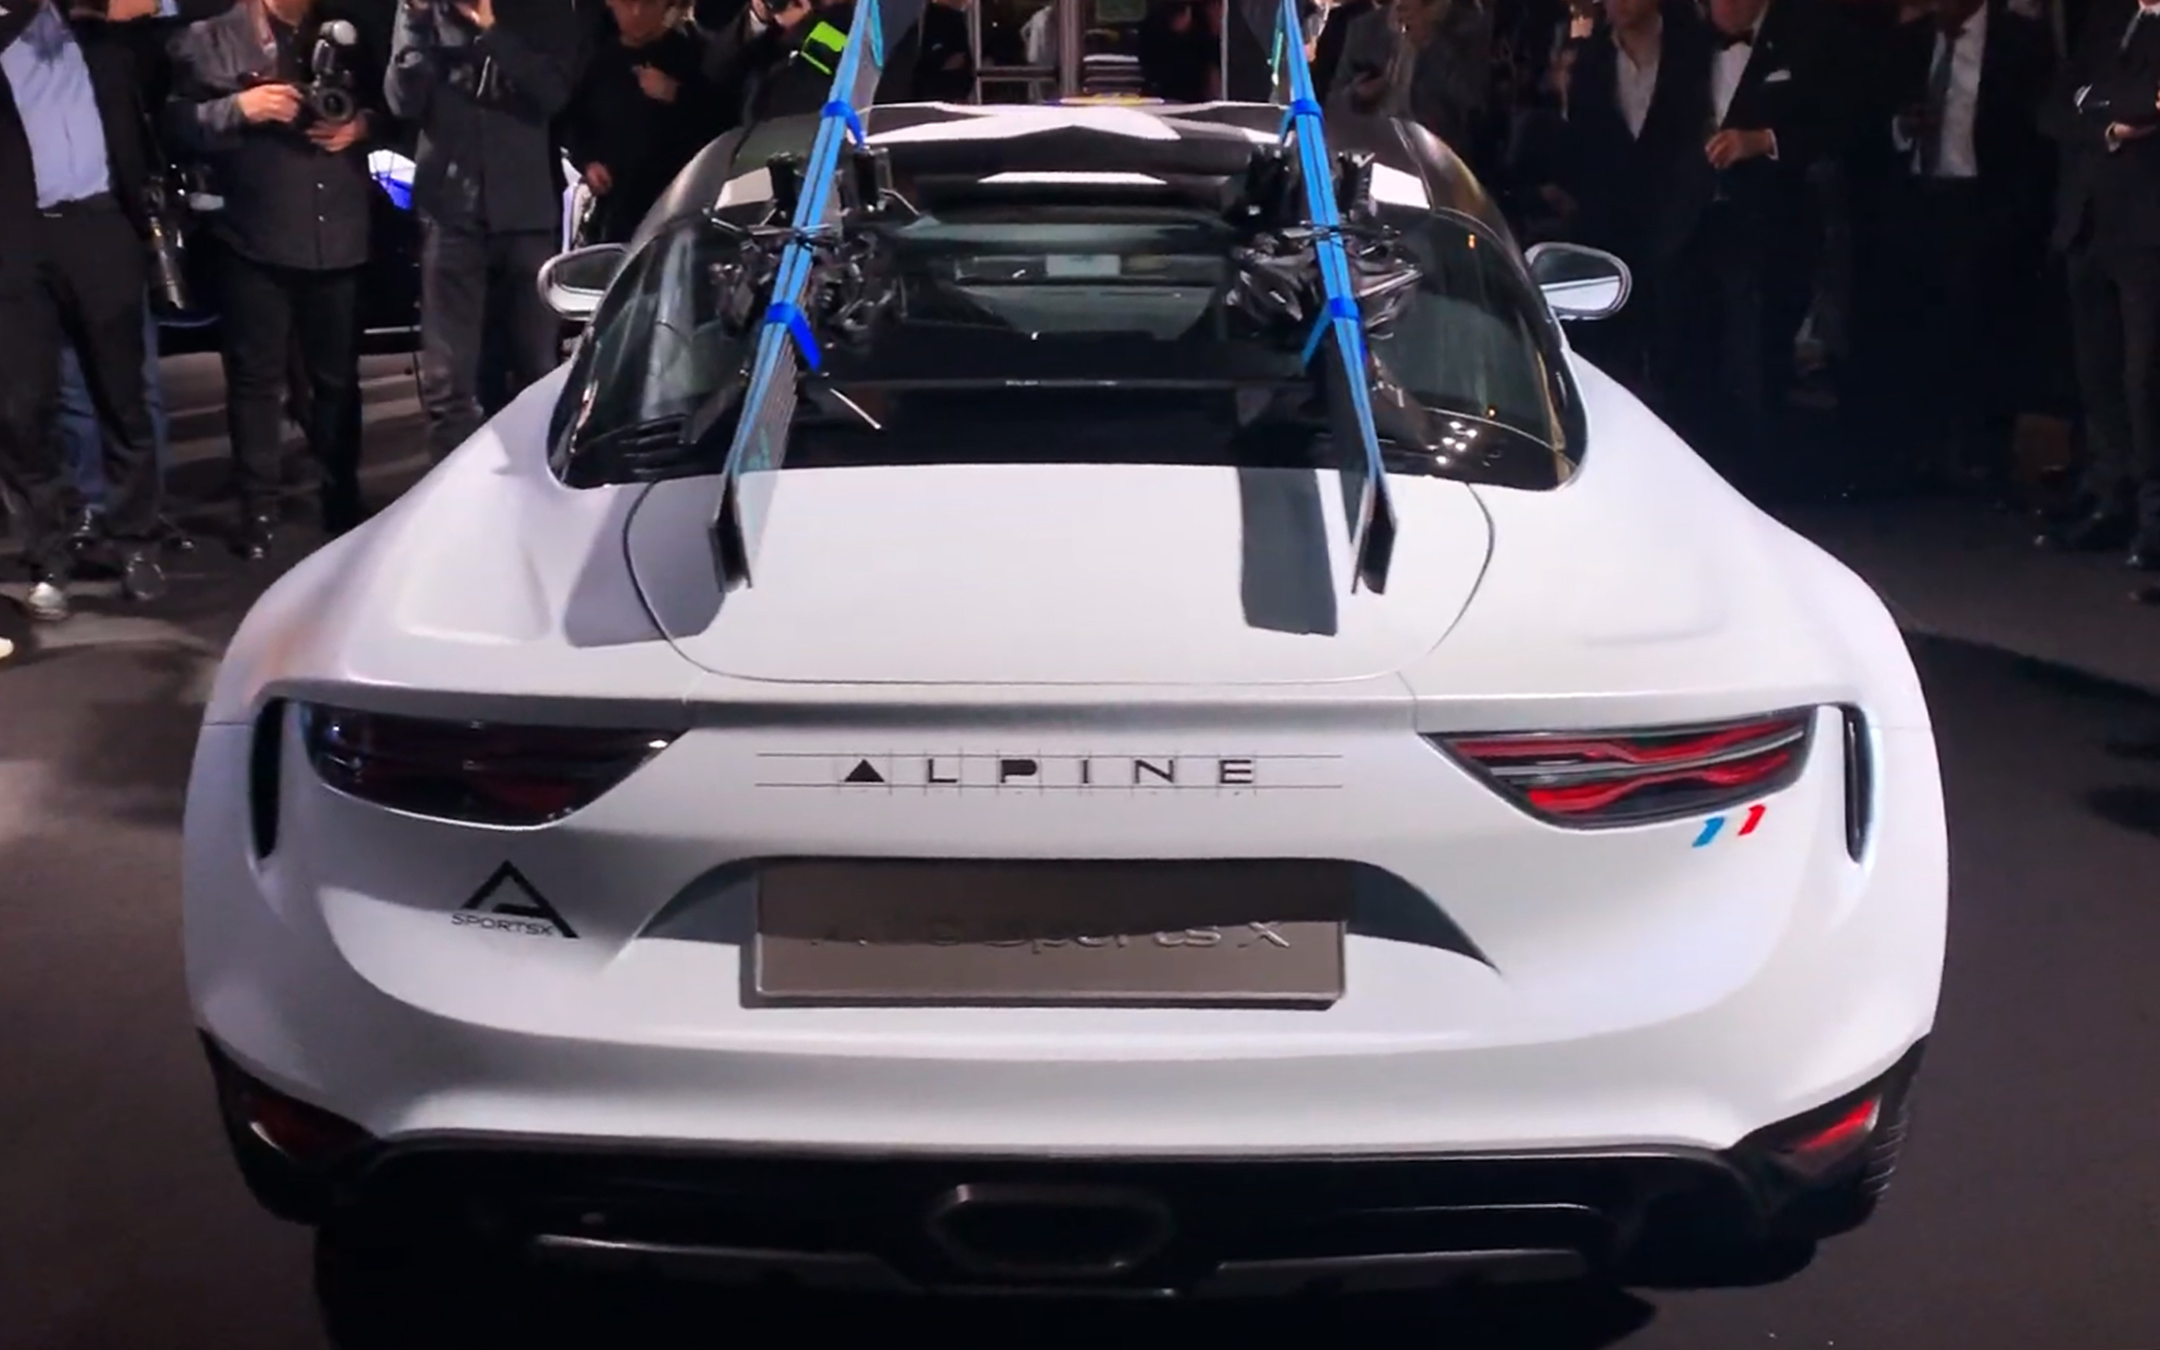 Alpine A110 Sports X - 2020 - rear face / face arrière - preview - showcar - photo screen video - FAI2020